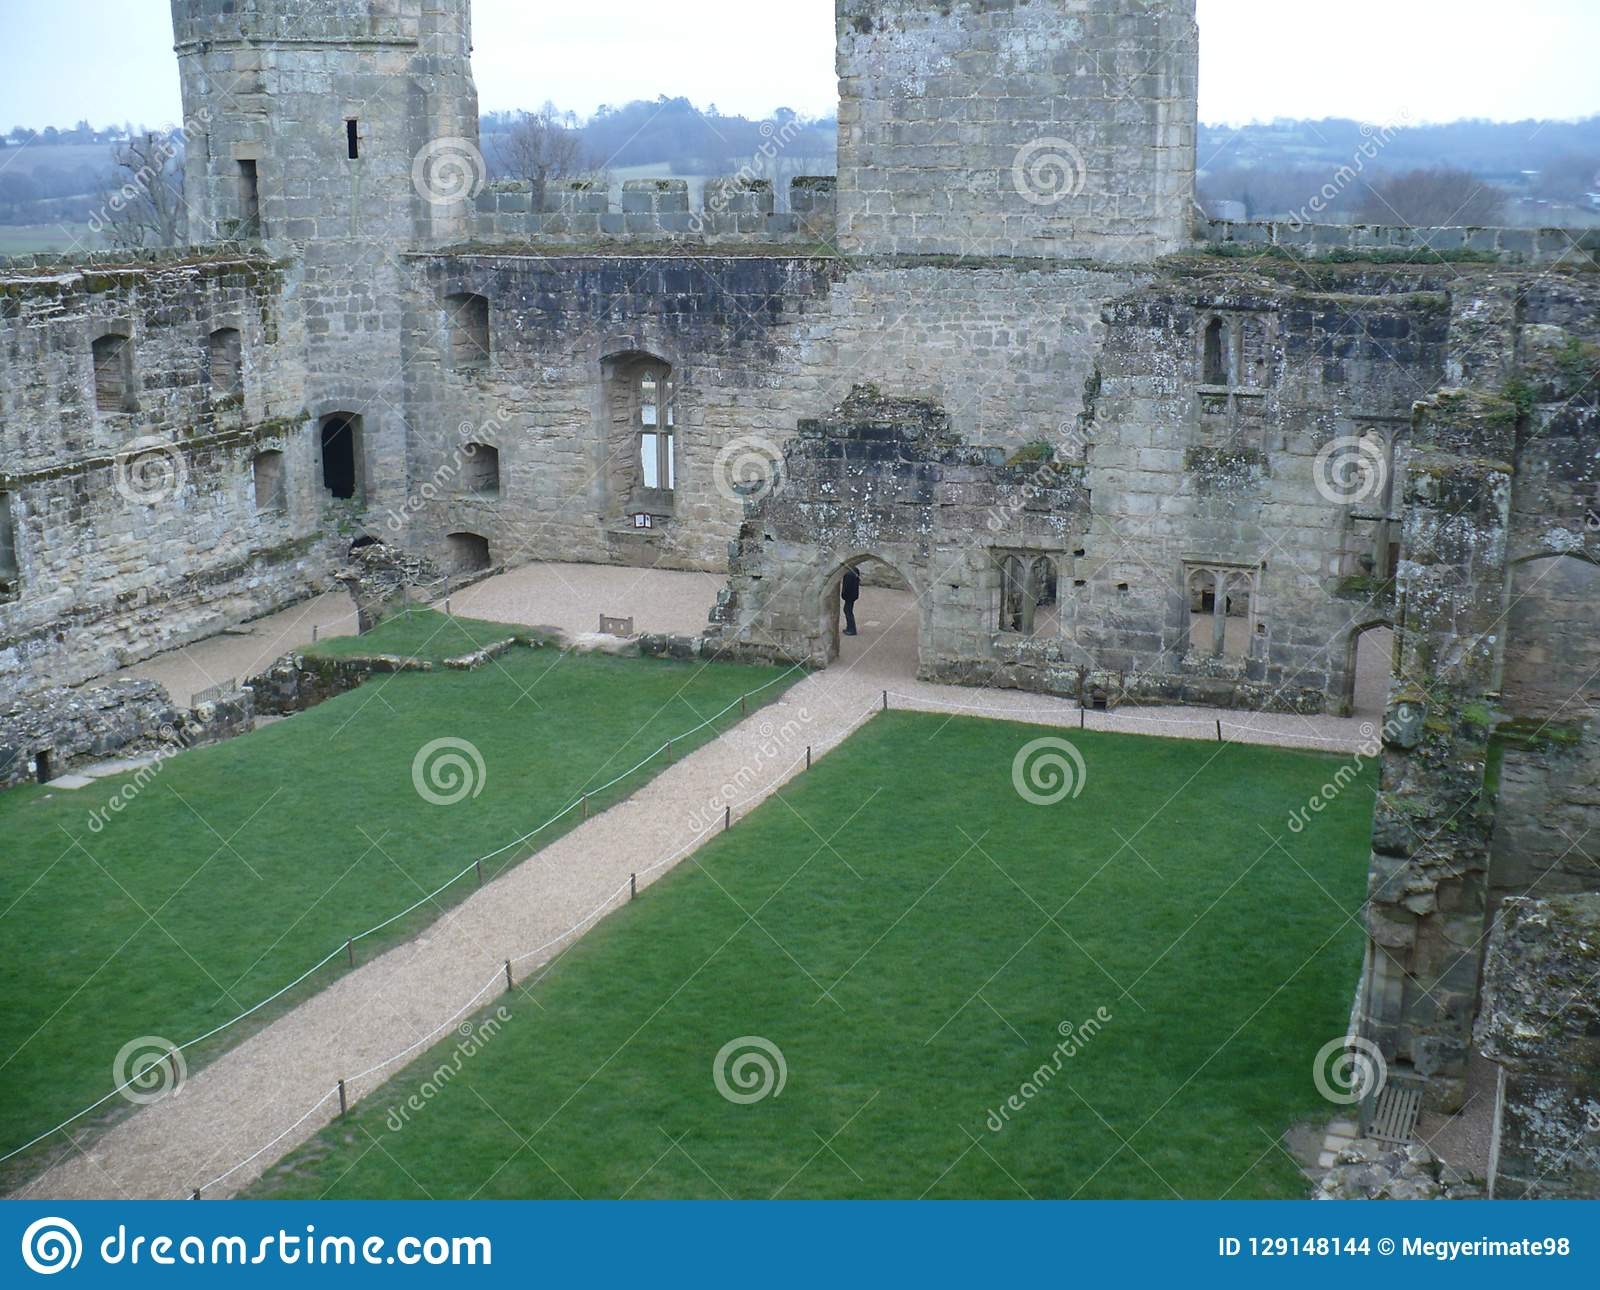 Bodiam Castle from an inner perspective